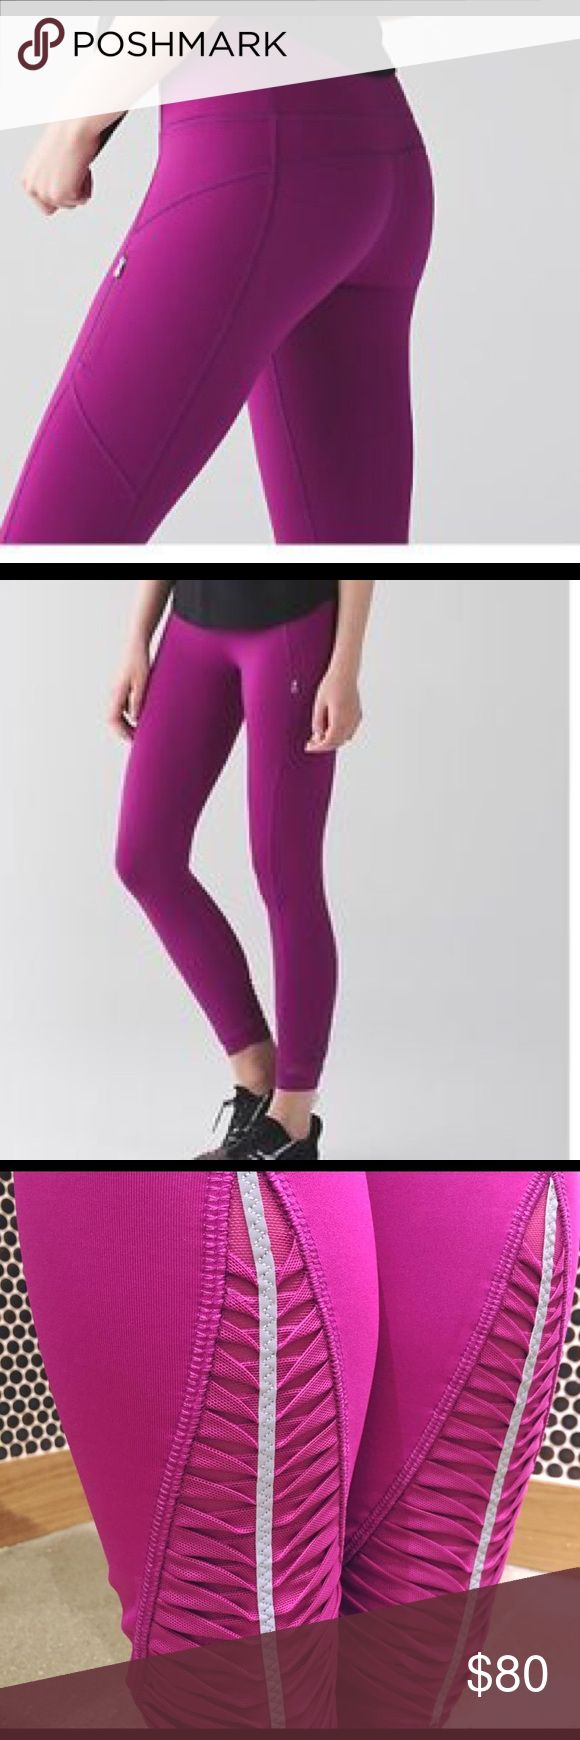 Lululemon Making Moves Tights in Plum - NWOT Basics: New without tags - 7/8 length leggings with zippered pockets and reflective material on the back for any evening jogging - size 2  Materials: Full-on Luxtreme lycra   Gorgeous plum-colored 7/8 lengths leggings from Lululemon. Bought these on final sale online, but they're too small for me :(   They run true to size but I bought them in a delusional moment of thinking I could fit a size 2 after one week of barre workouts lululemon athletica…